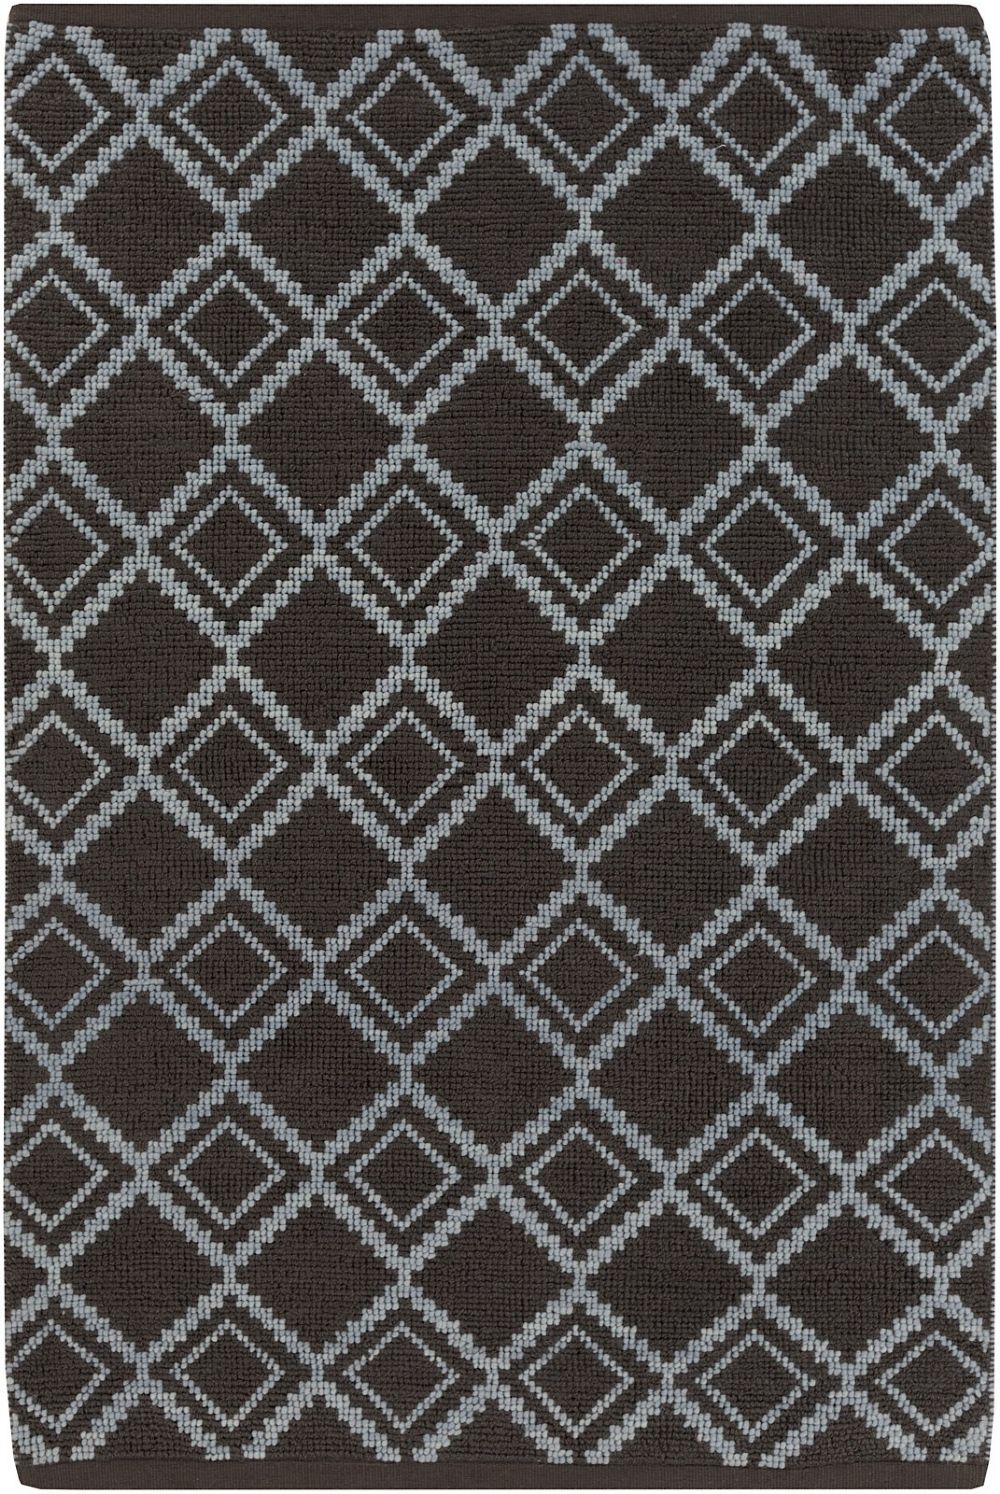 surya aztec natural fiber area rug collection